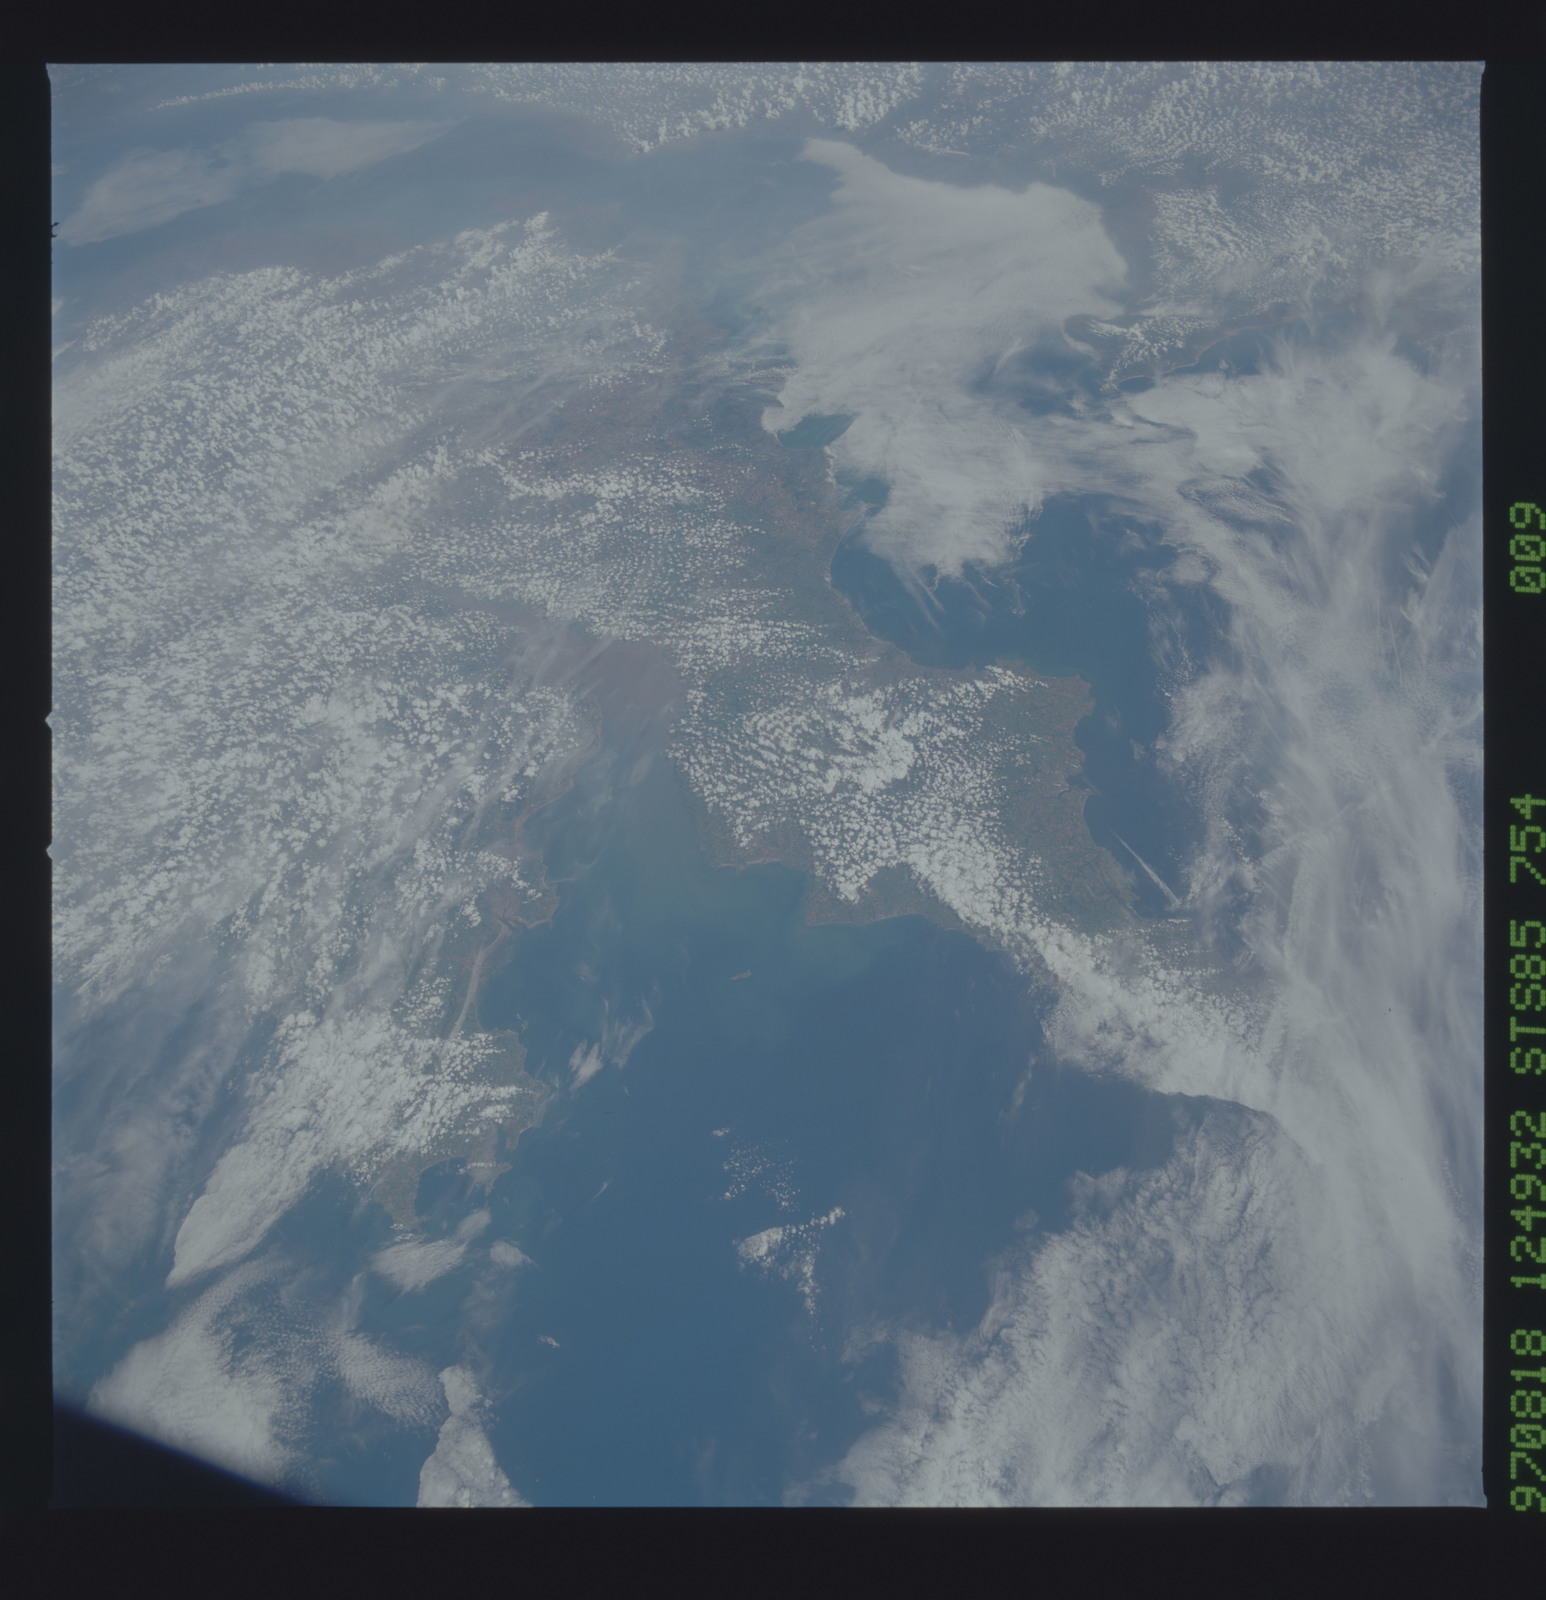 STS085-754-009 - STS-085 - Earth observations taken from orbiter Discovery during STS-85 mission